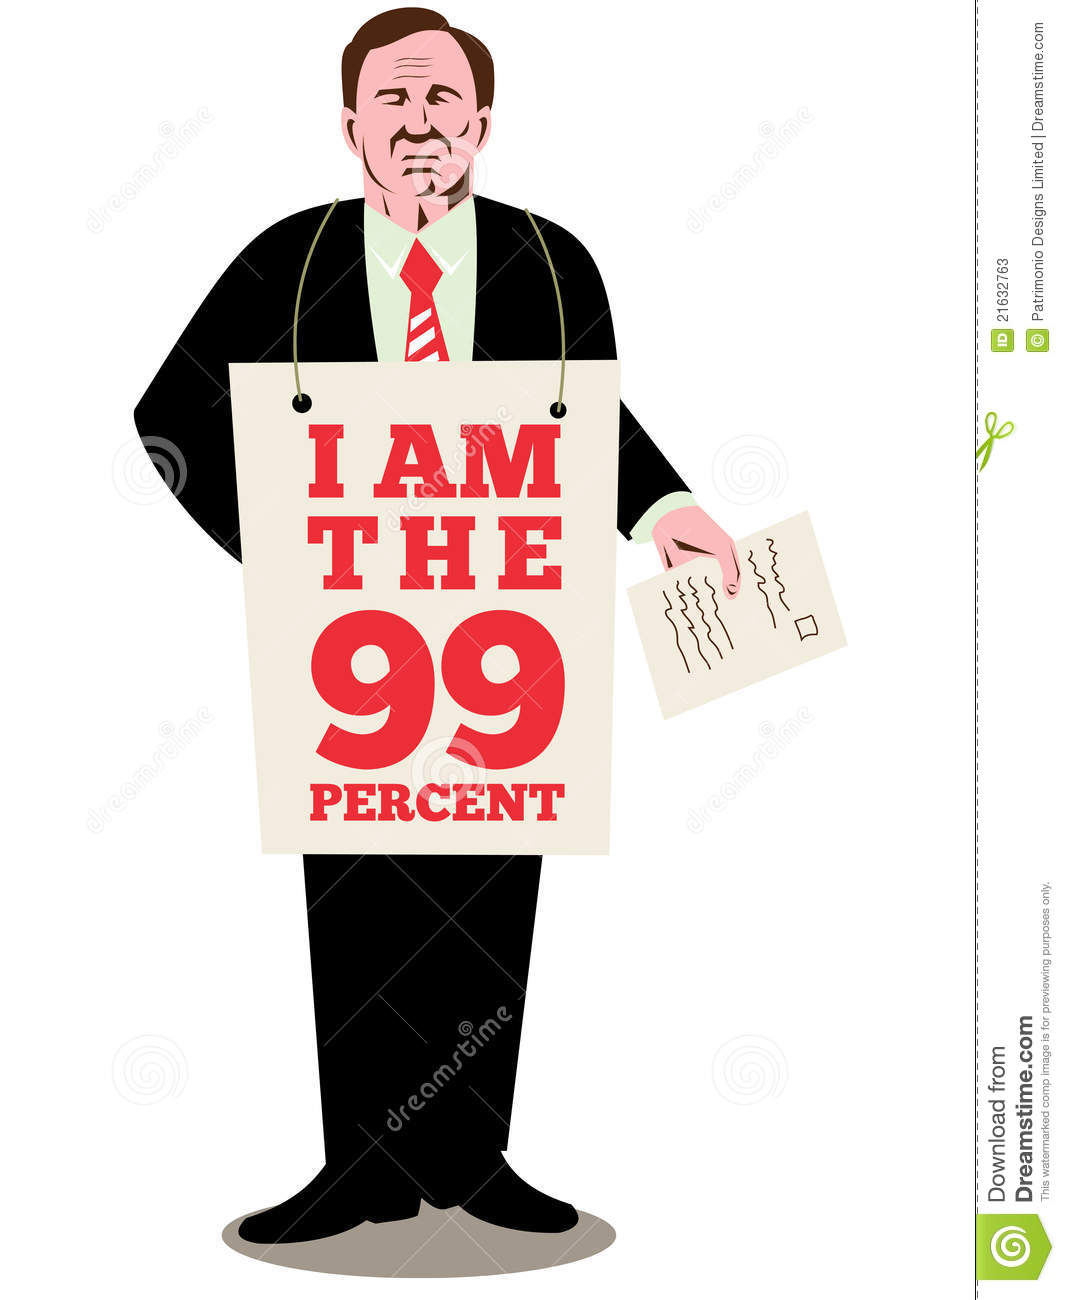 Occupy wall street american worker stock image for Z table 99 percent